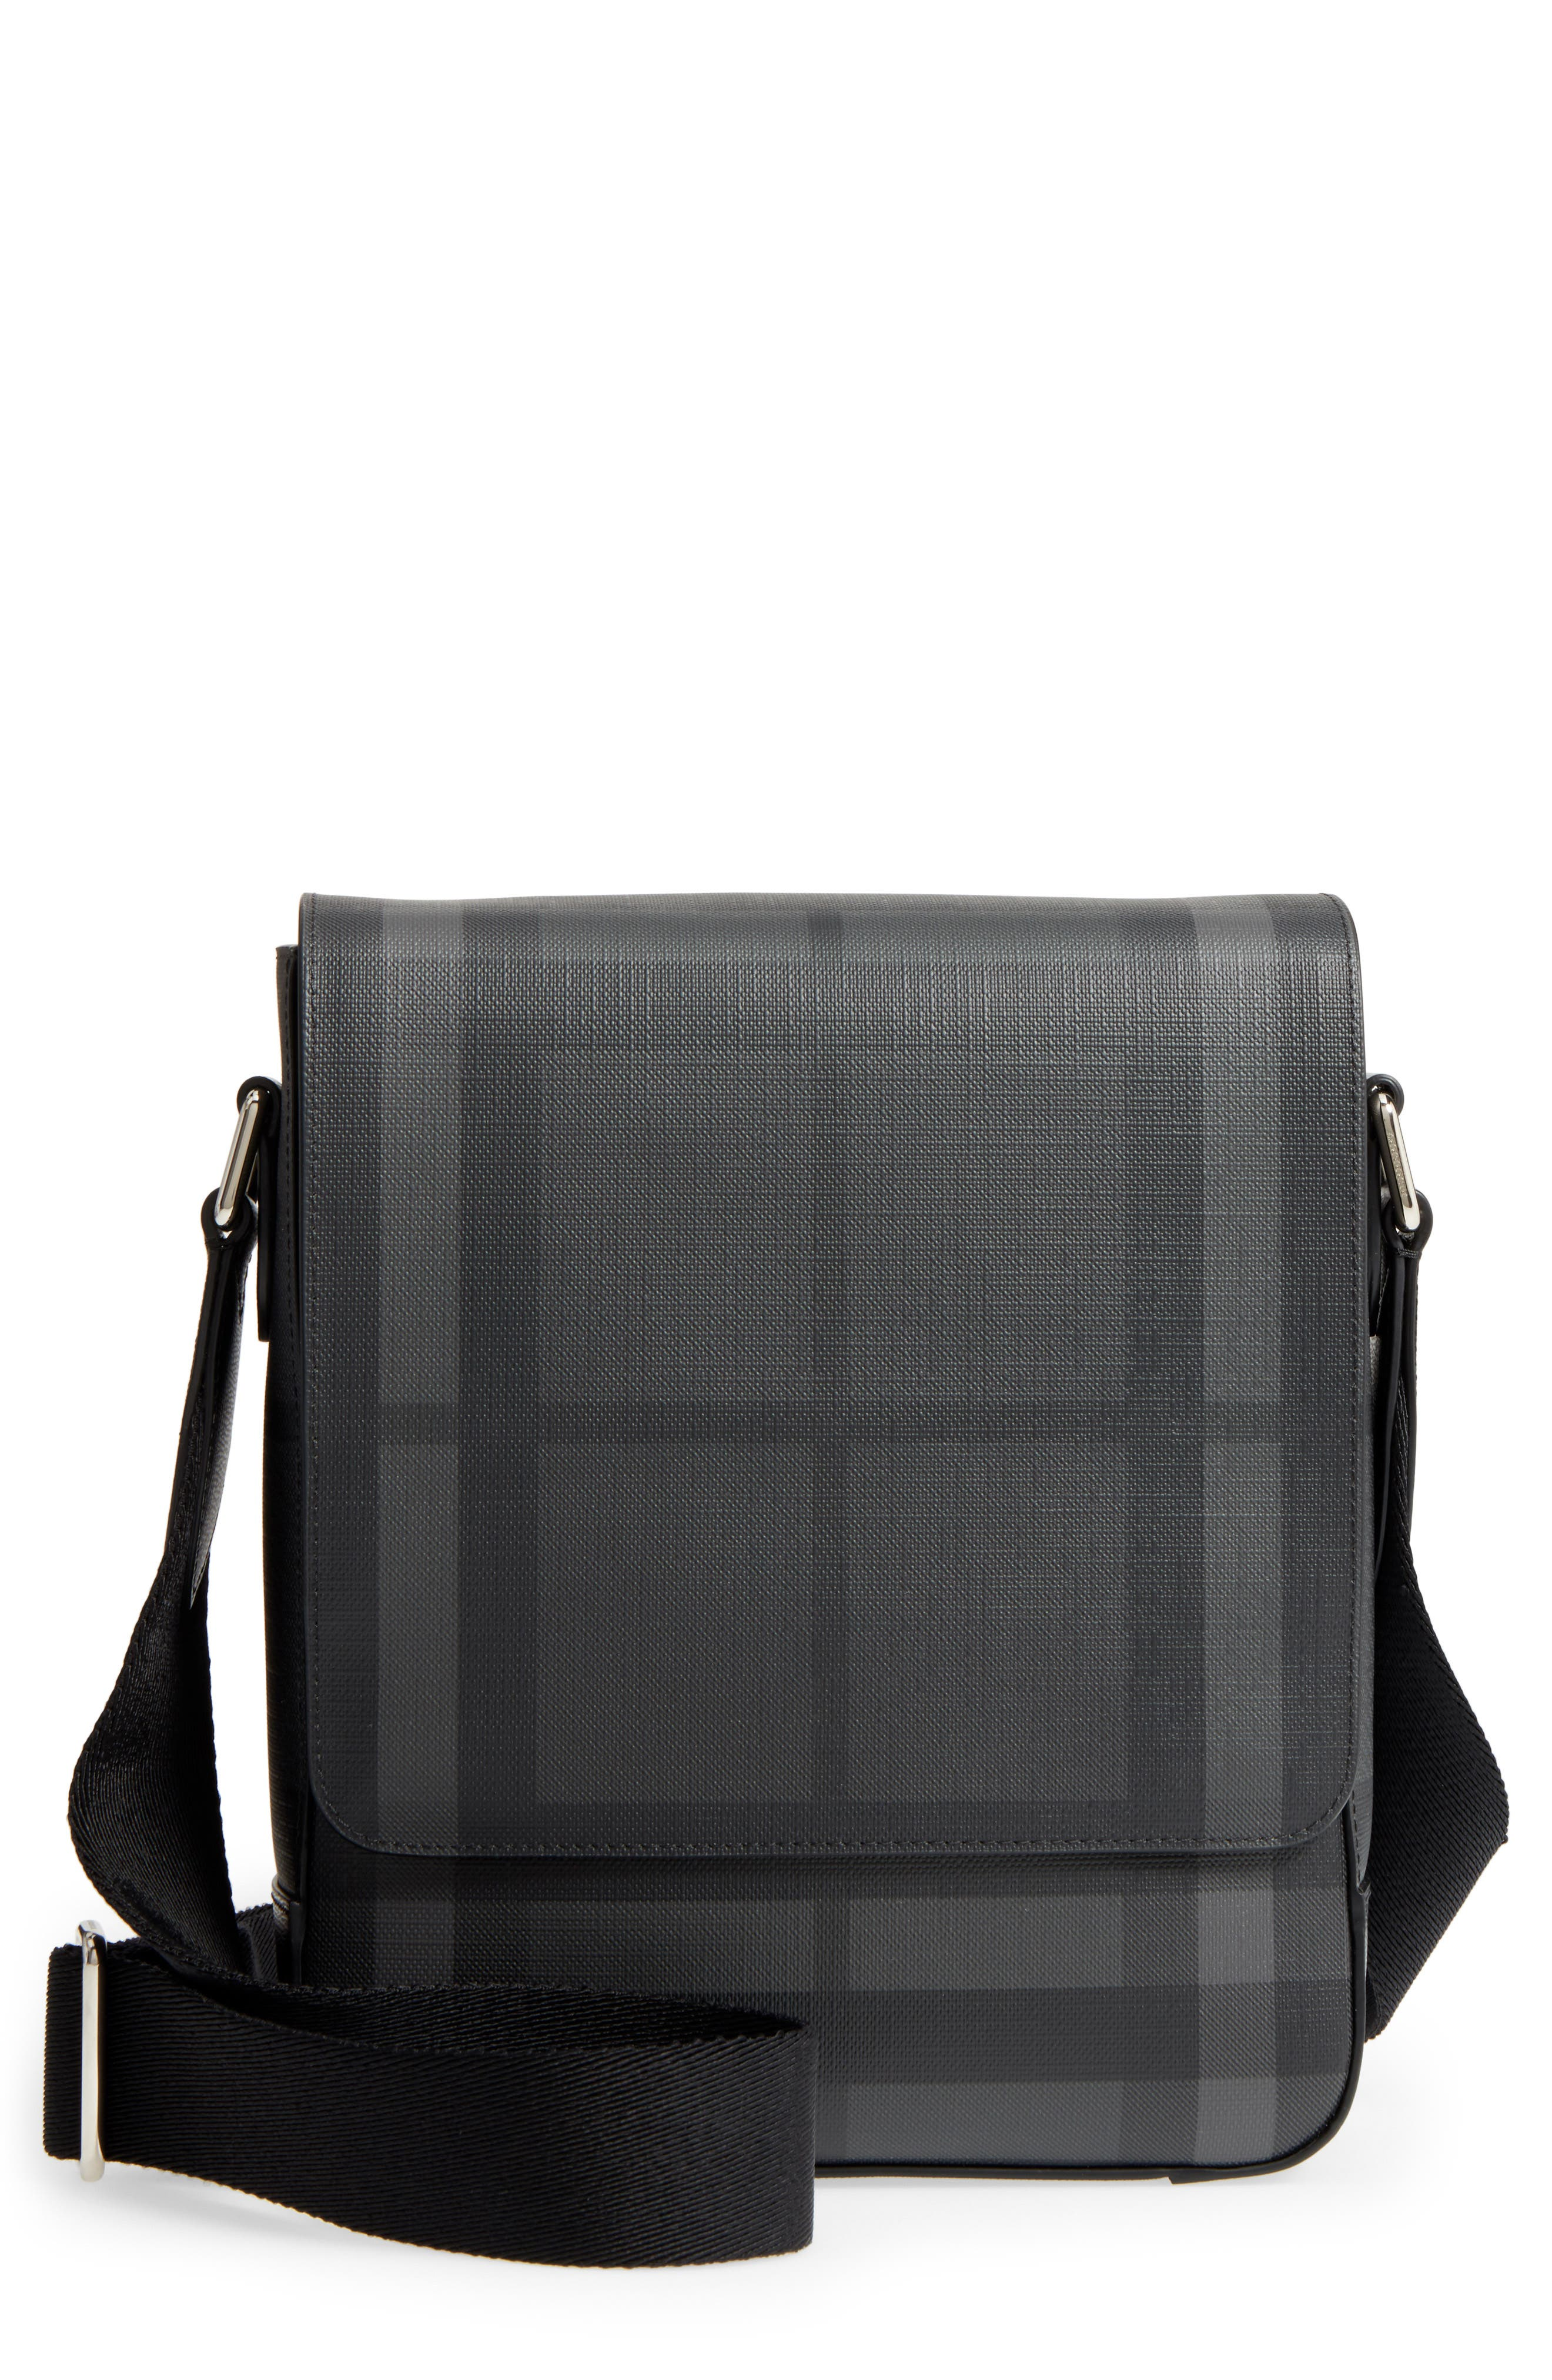 Greenford Crossbody Bag,                         Main,                         color, Charcoal/ Black